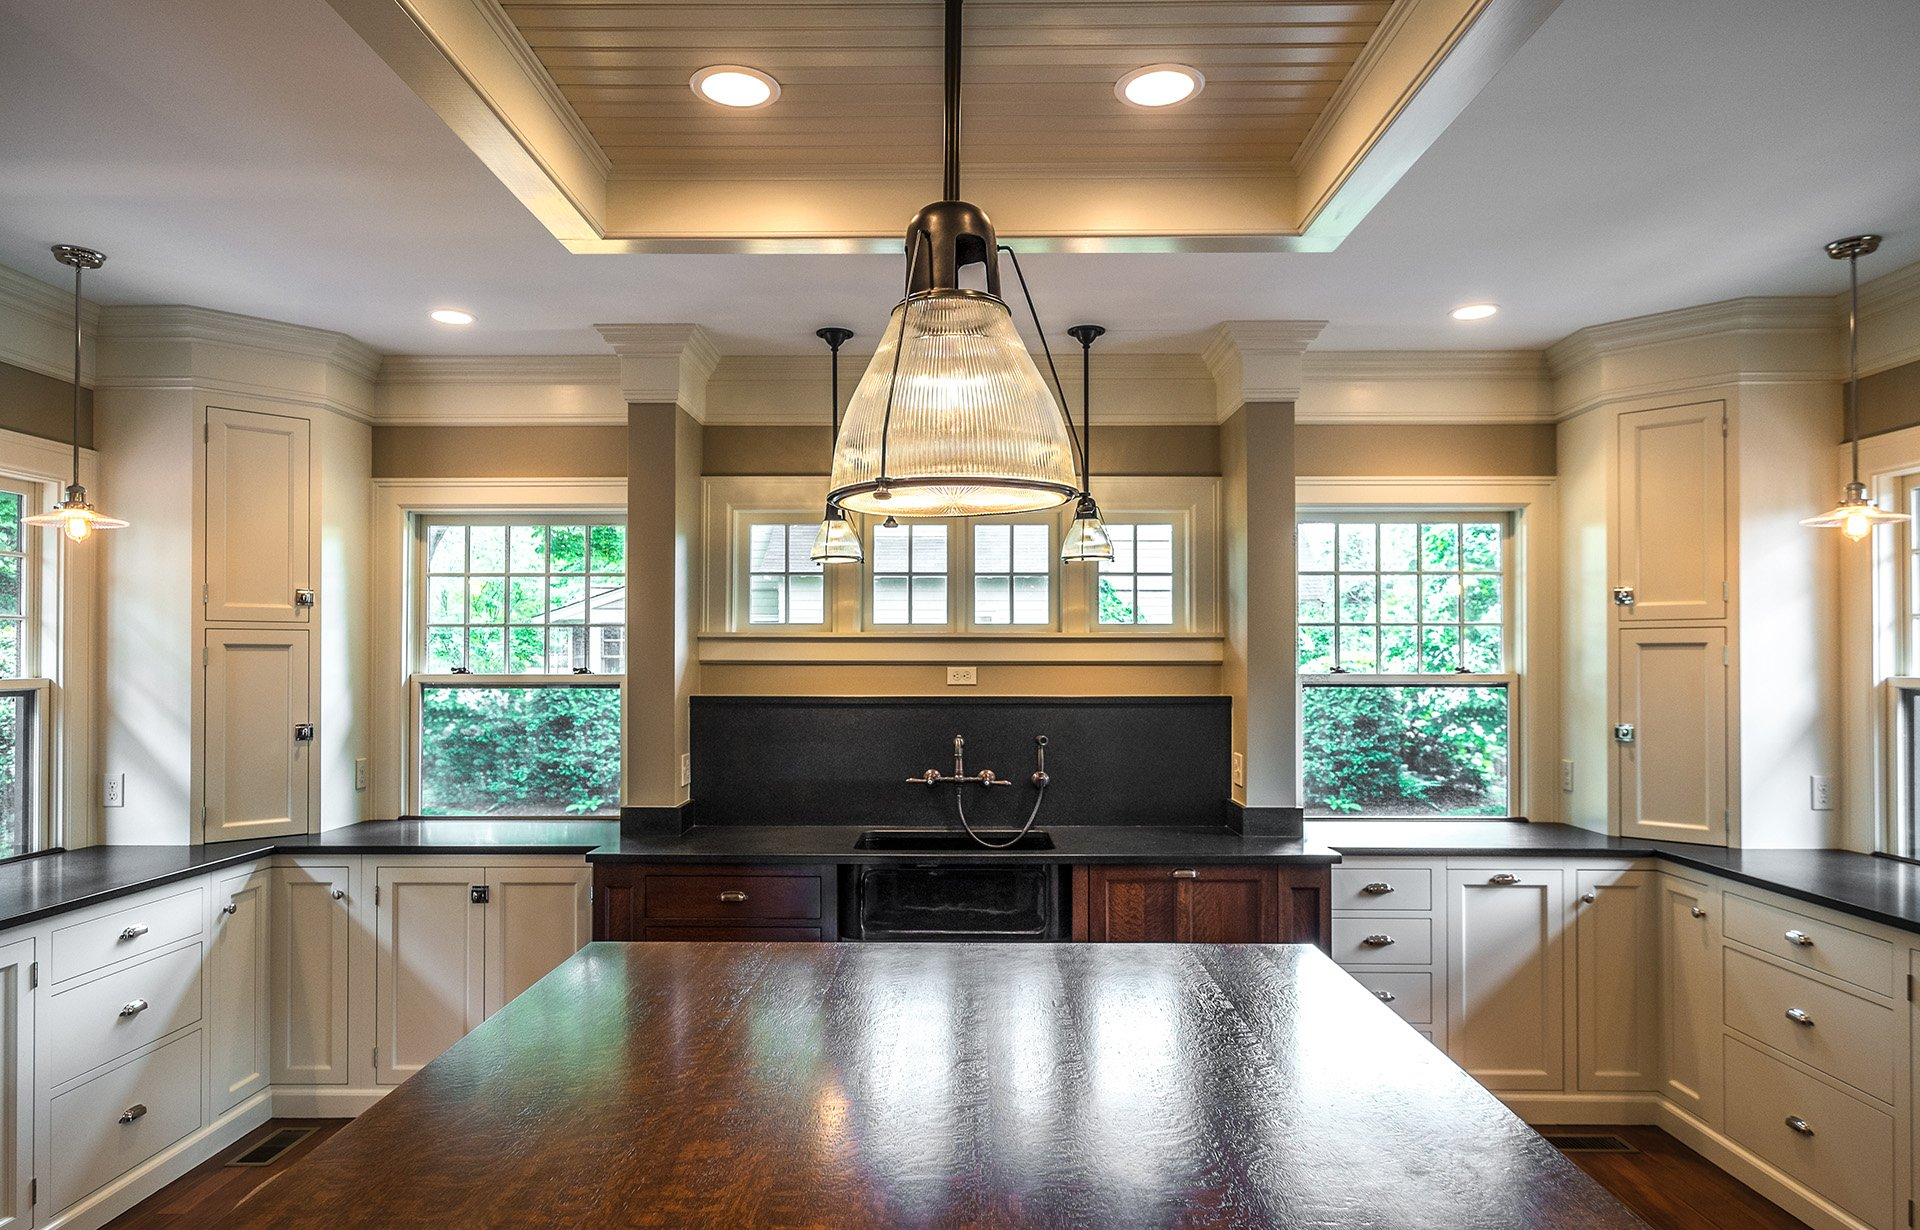 Kennebec Company designed this Transitional kitchen featuring open spaces and warm, neutral tones.